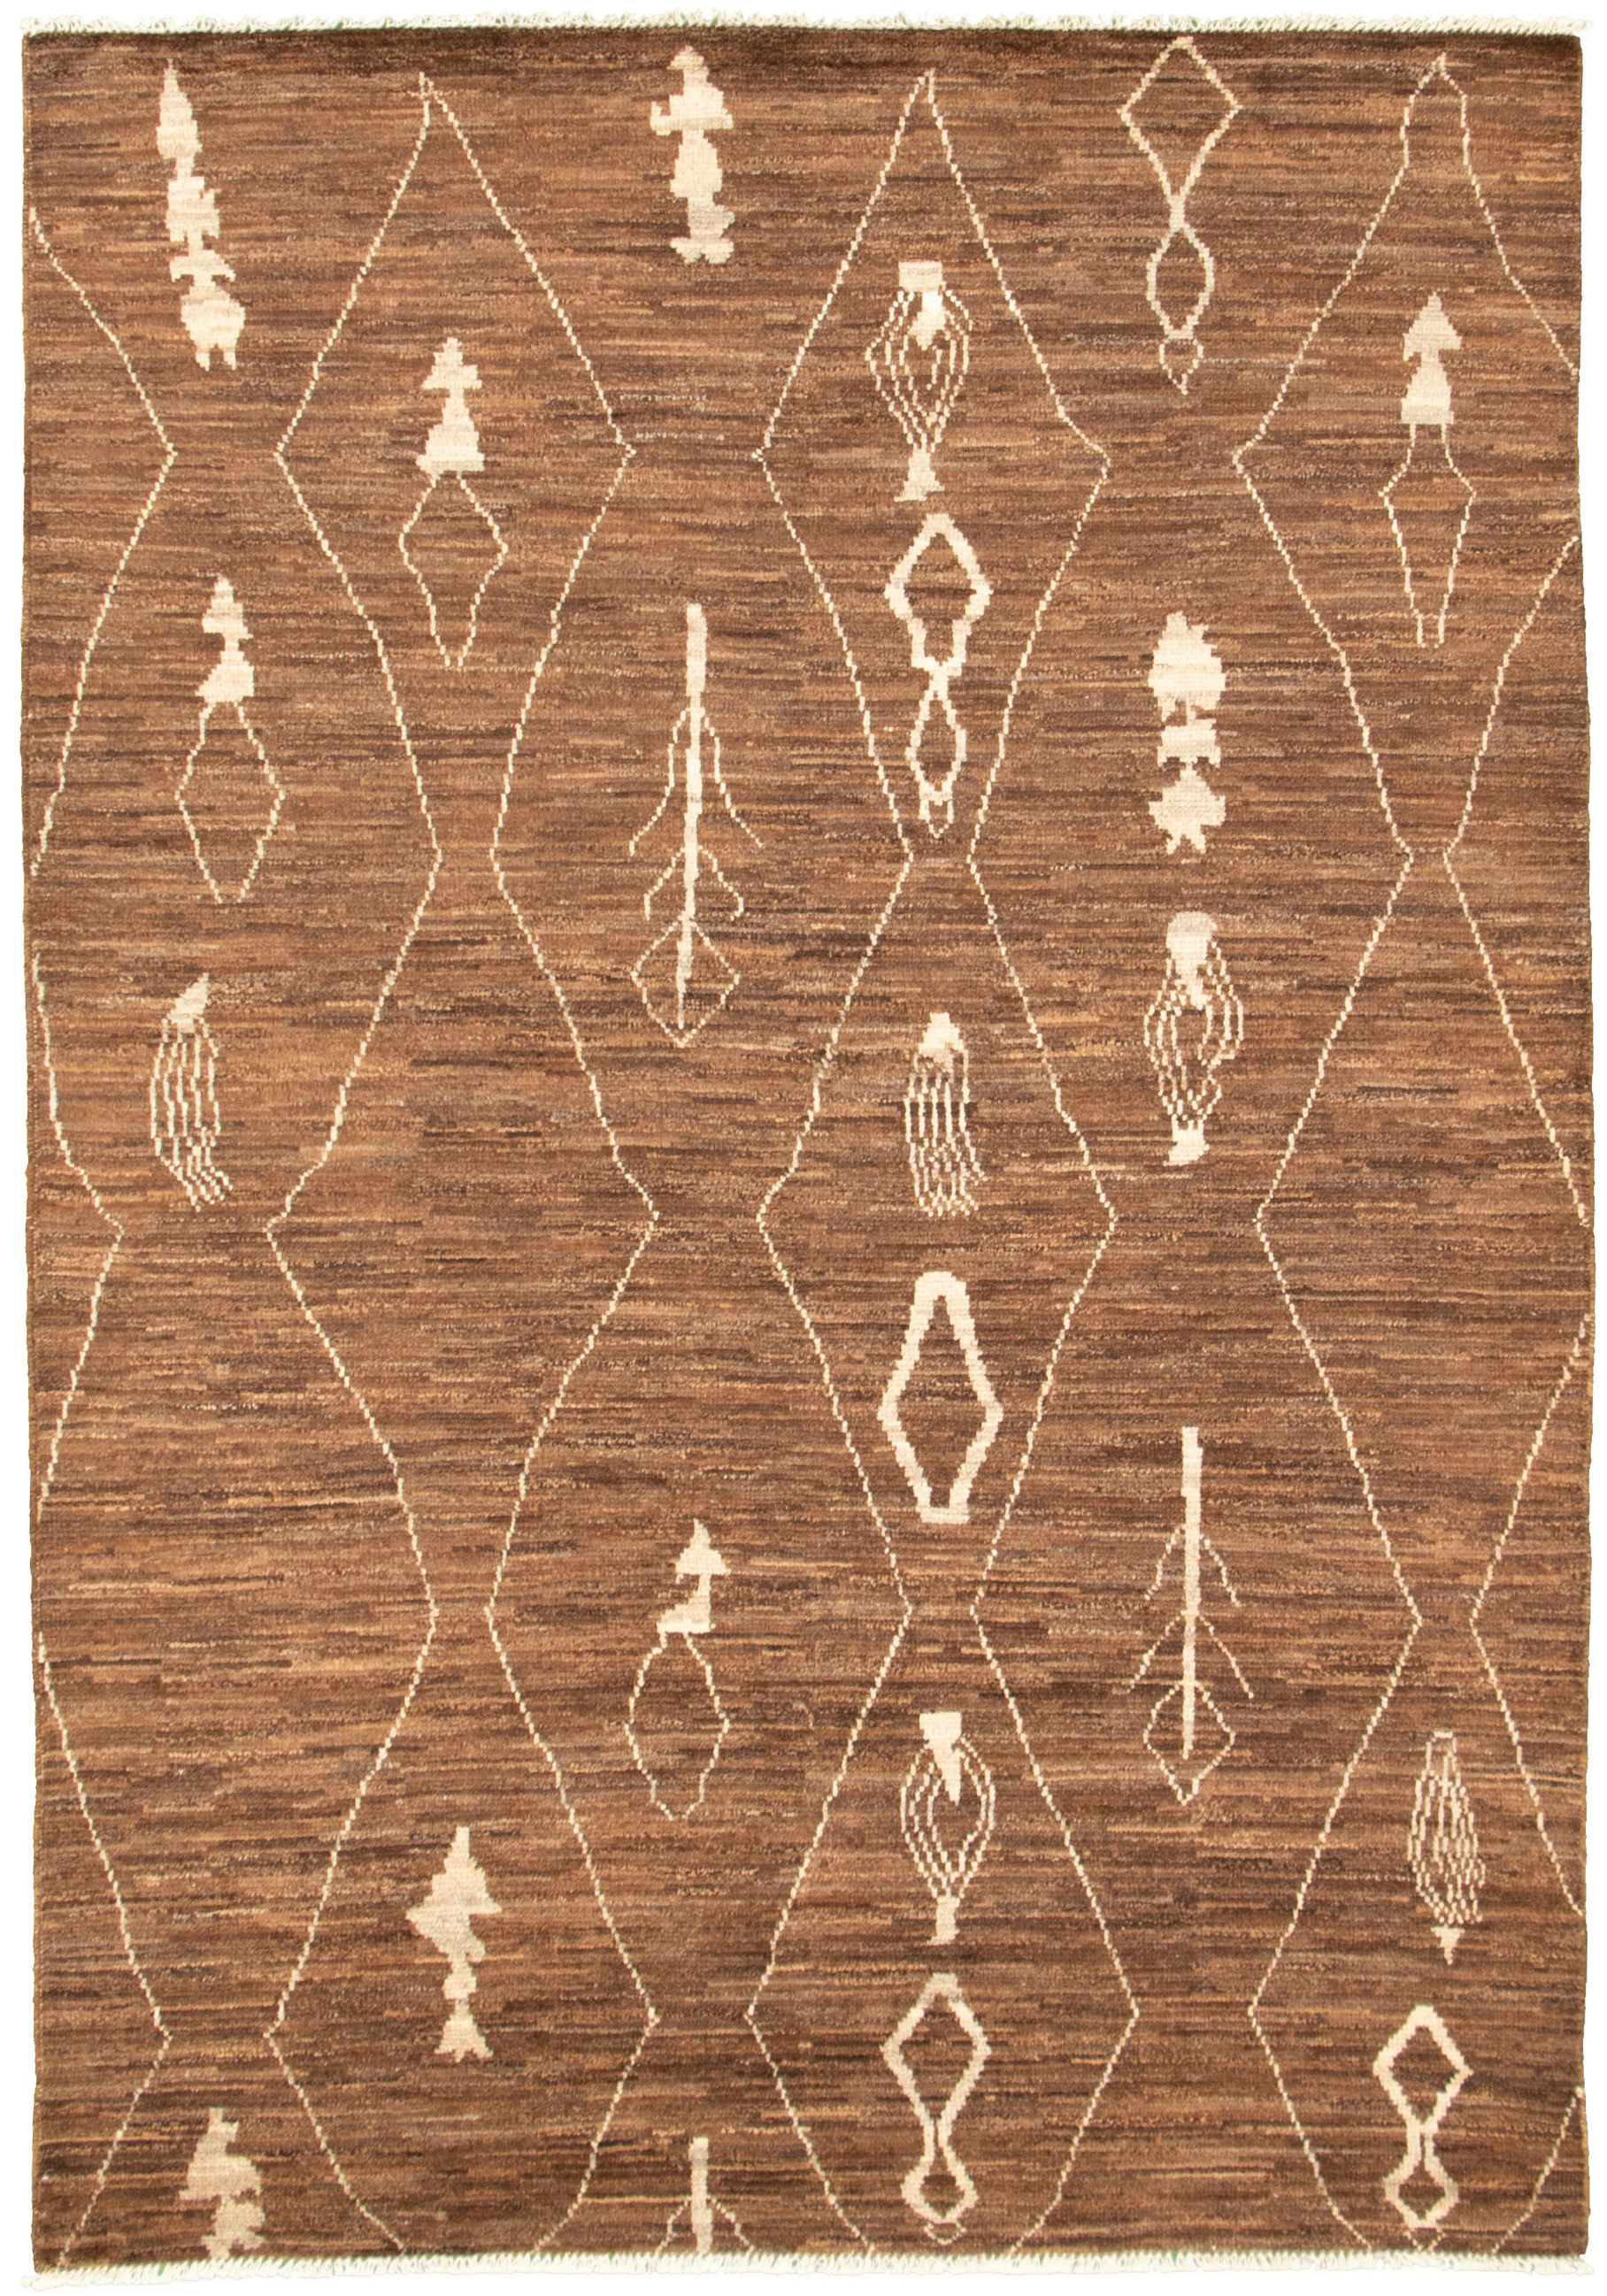 "Hand-knotted Marrakech Dark Brown Wool Rug 6'0"" x 8'8"" Size: 6'0"" x 8'8"""